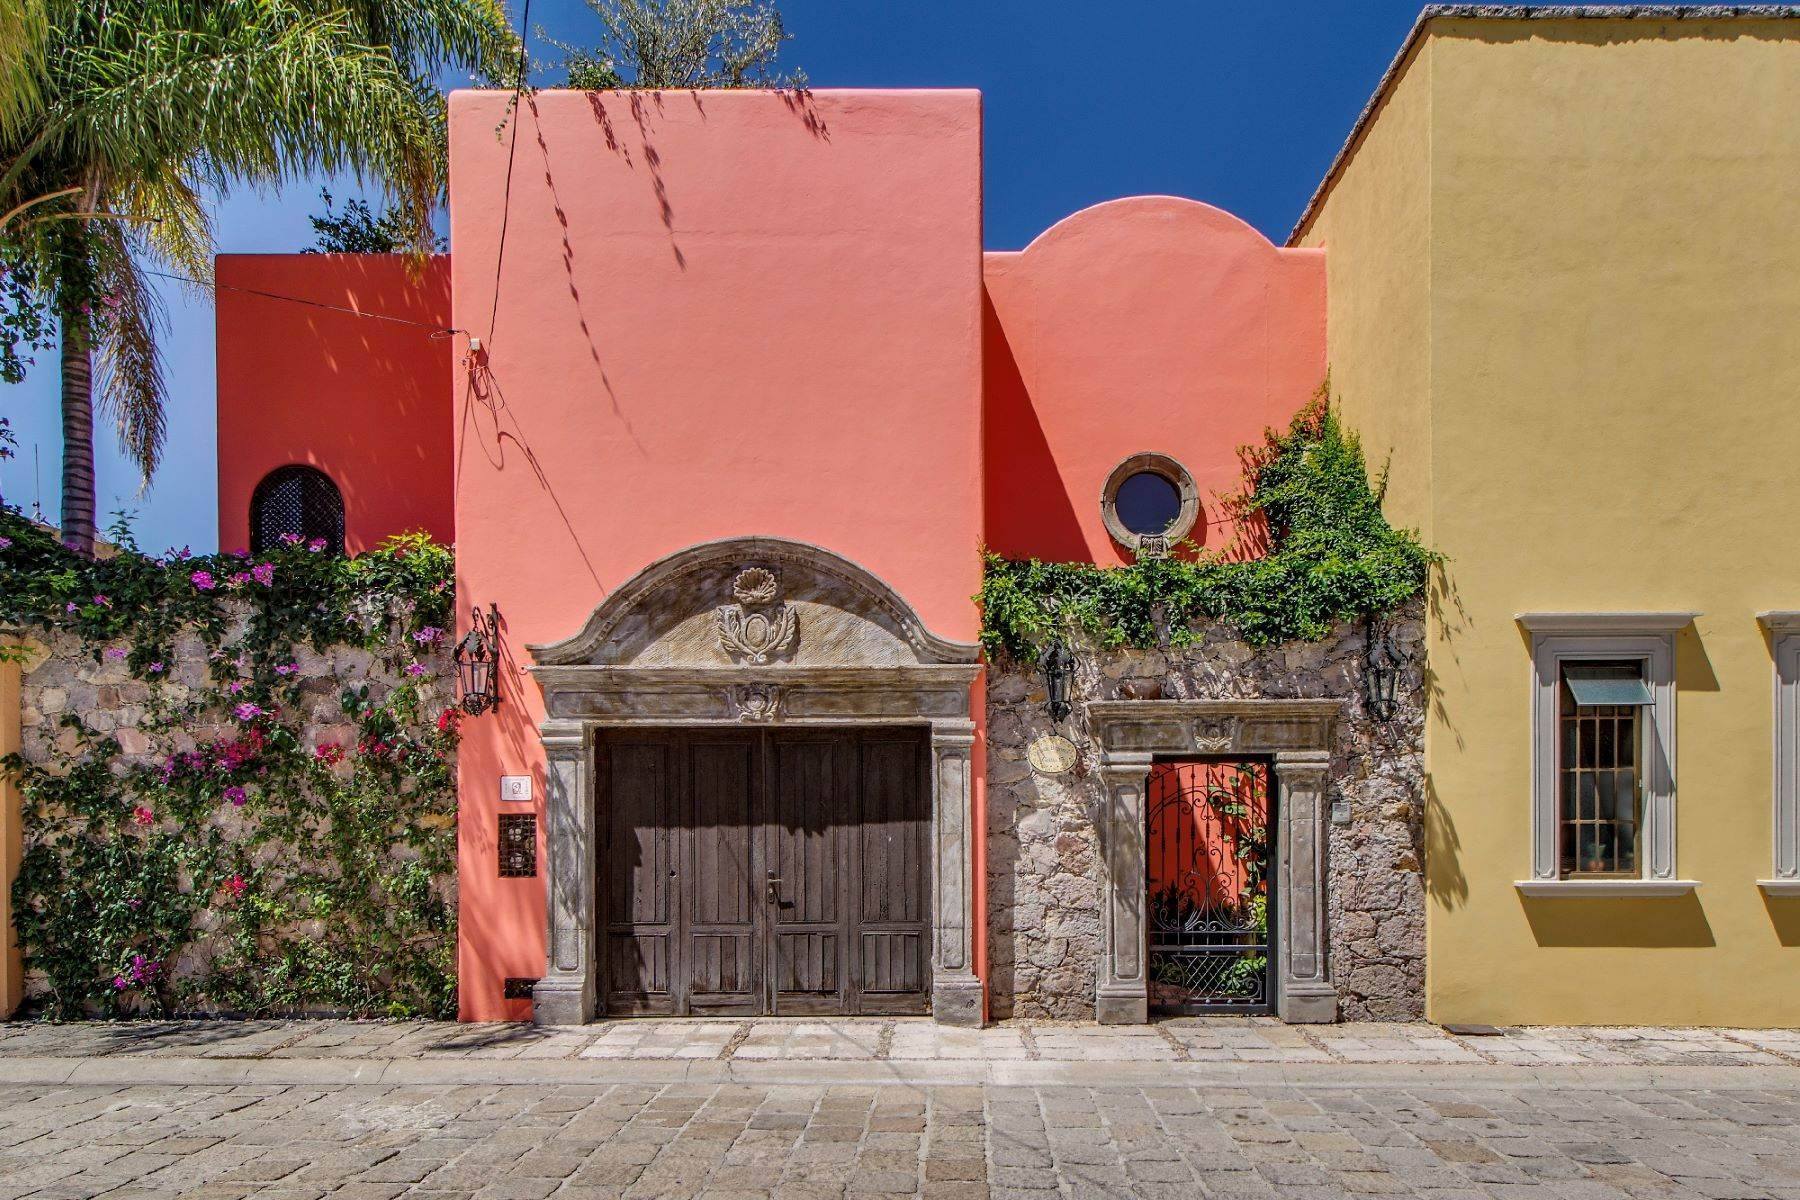 Single Family Homes for Sale at Casa Cerrada de Grillo San Miguel De Allende, Guanajuato 37700 Mexico